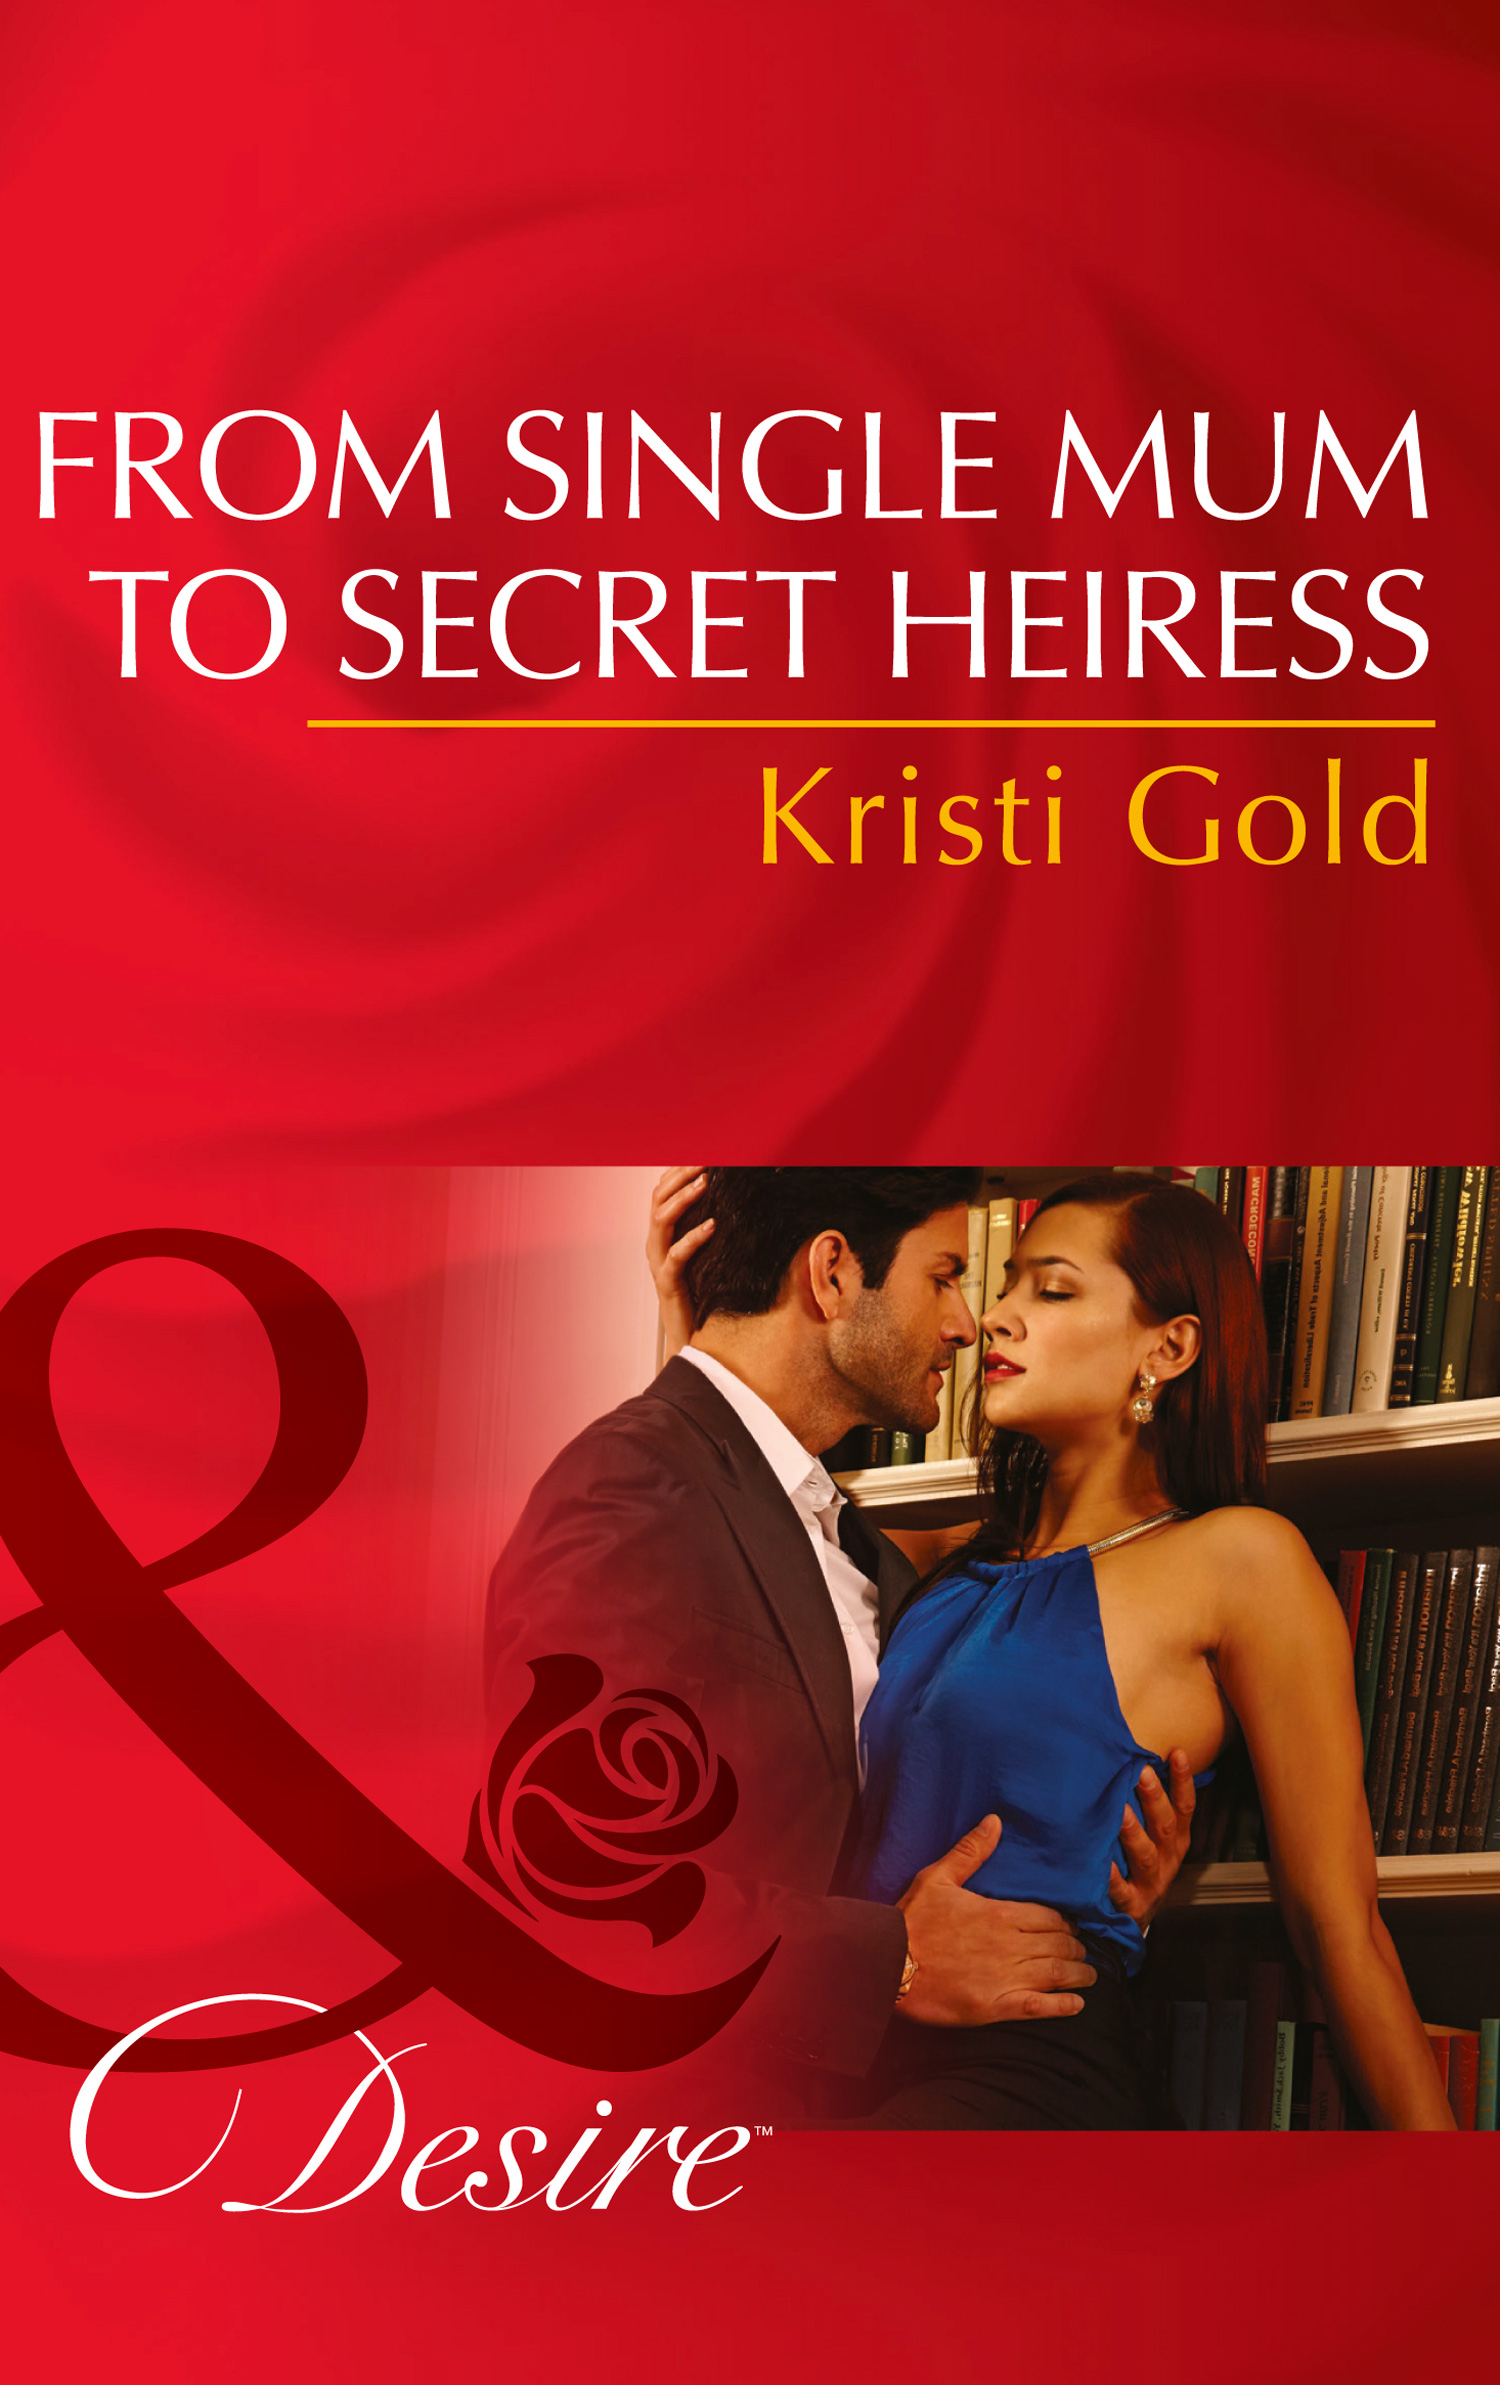 From Single Mum to Secret Heiress